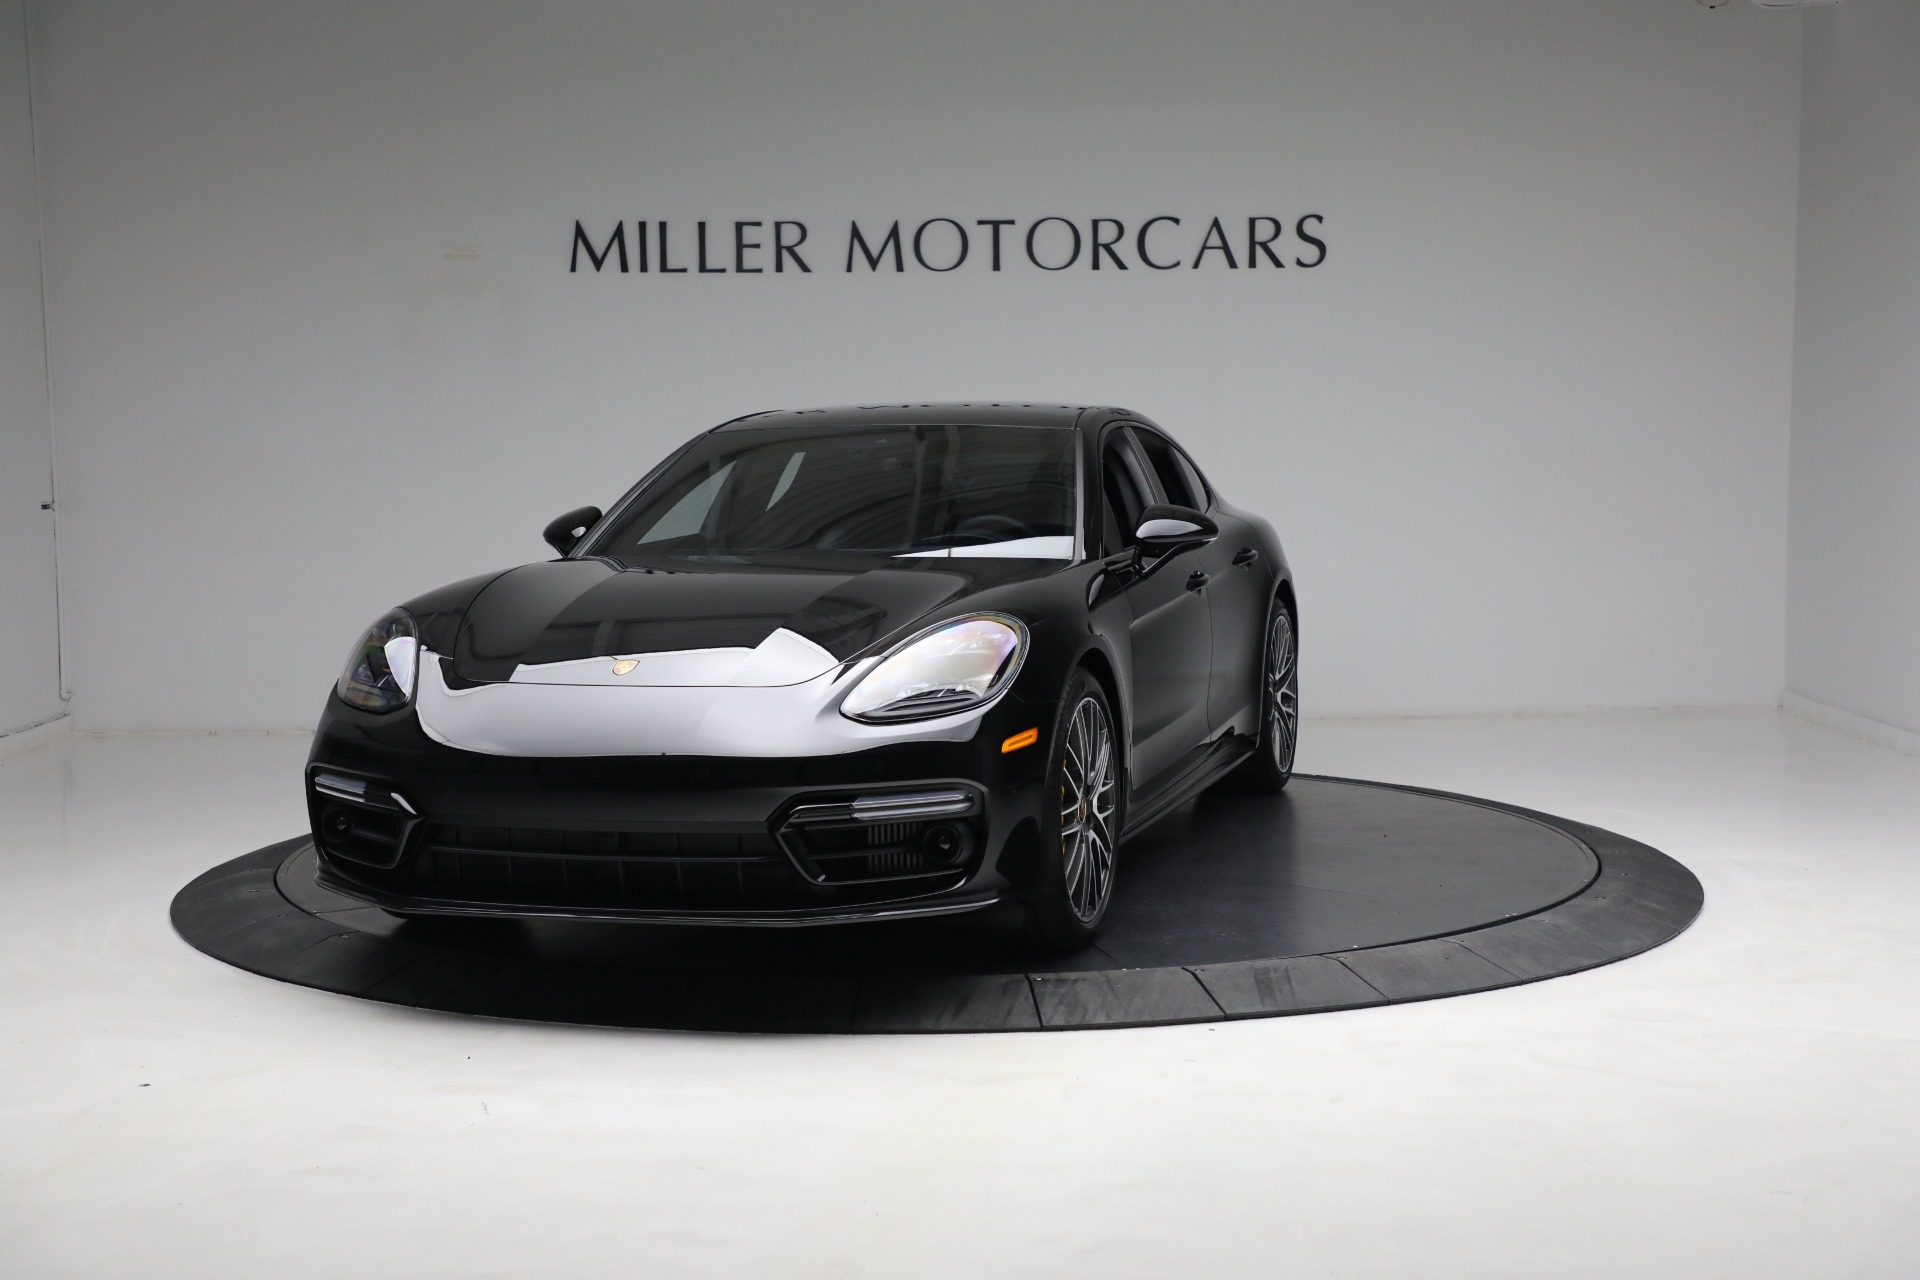 Used 2021 Porsche Panamera Turbo S for sale $204,900 at Rolls-Royce Motor Cars Greenwich in Greenwich CT 06830 1